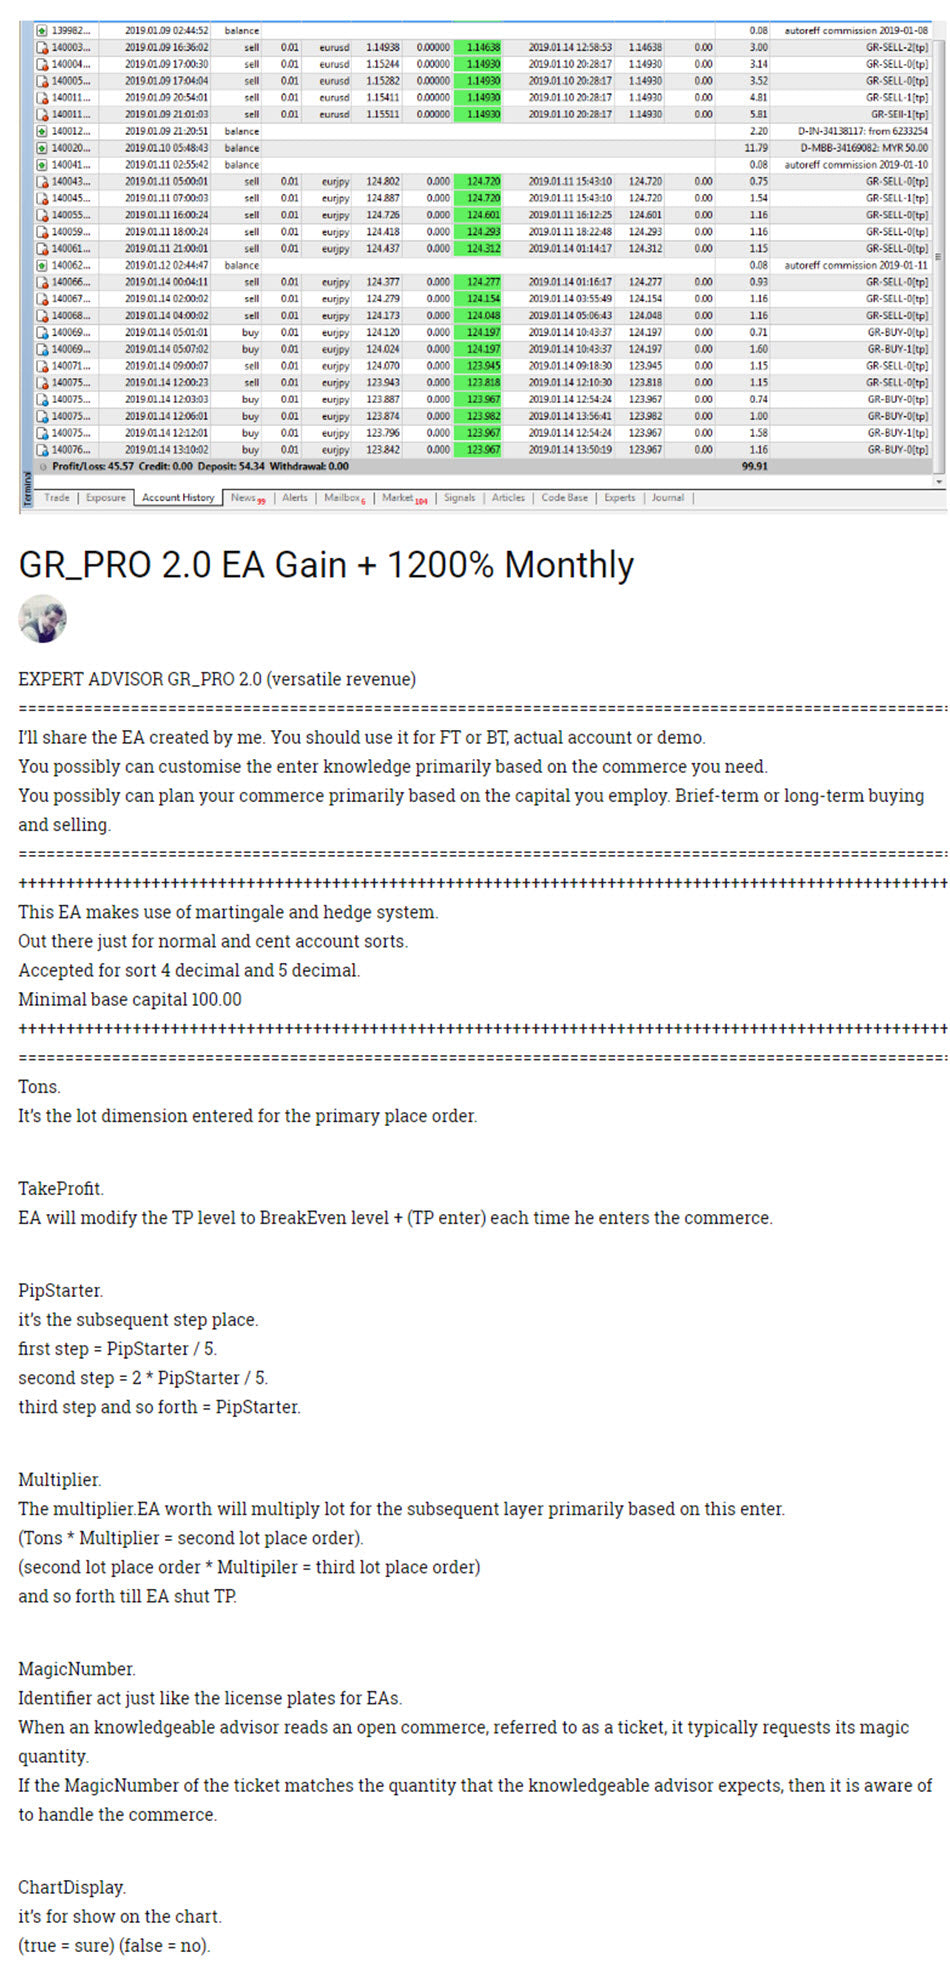 GR PRO 2.0 with Multiplier